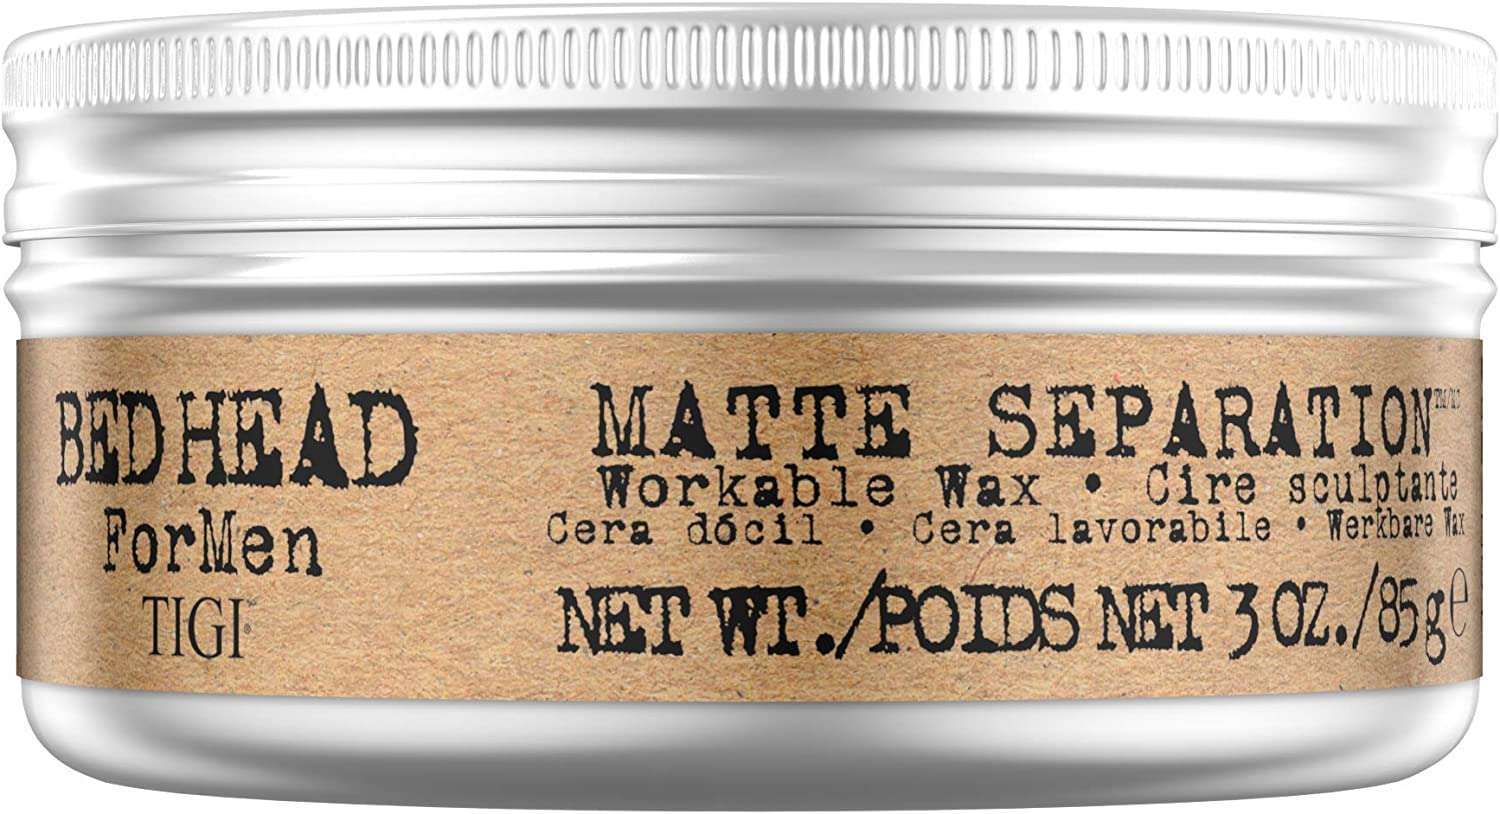 Bed Head For Men By Tigi Matte Separation Mens Hair Wax For Firm Hold 85 G Amazon Co Uk Beauty